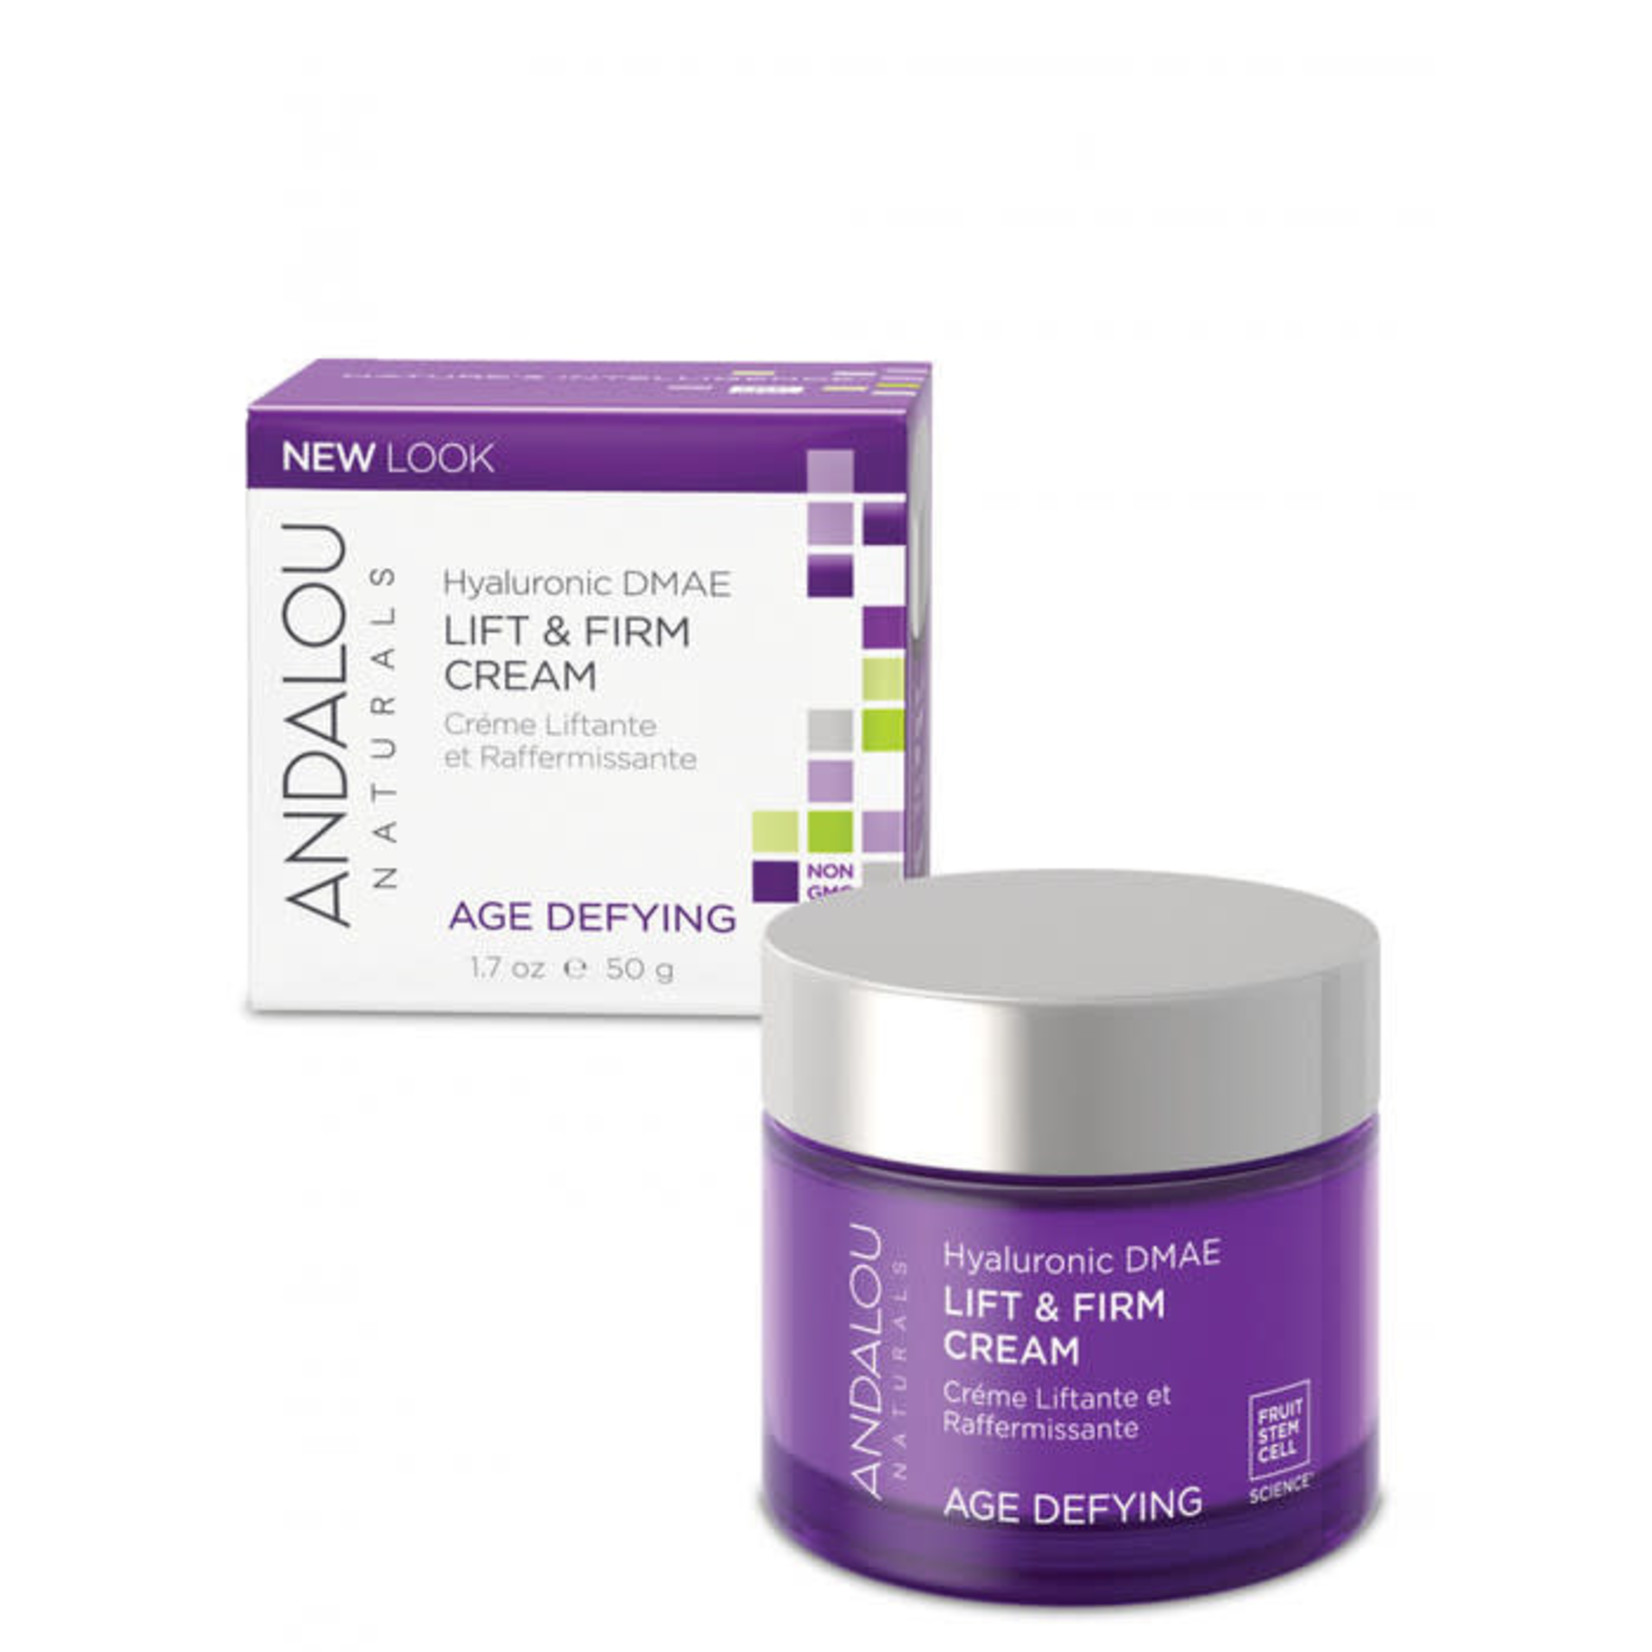 Andalou Andalou Hyaluronic DMAE Lift & Firm Cream Age Defying